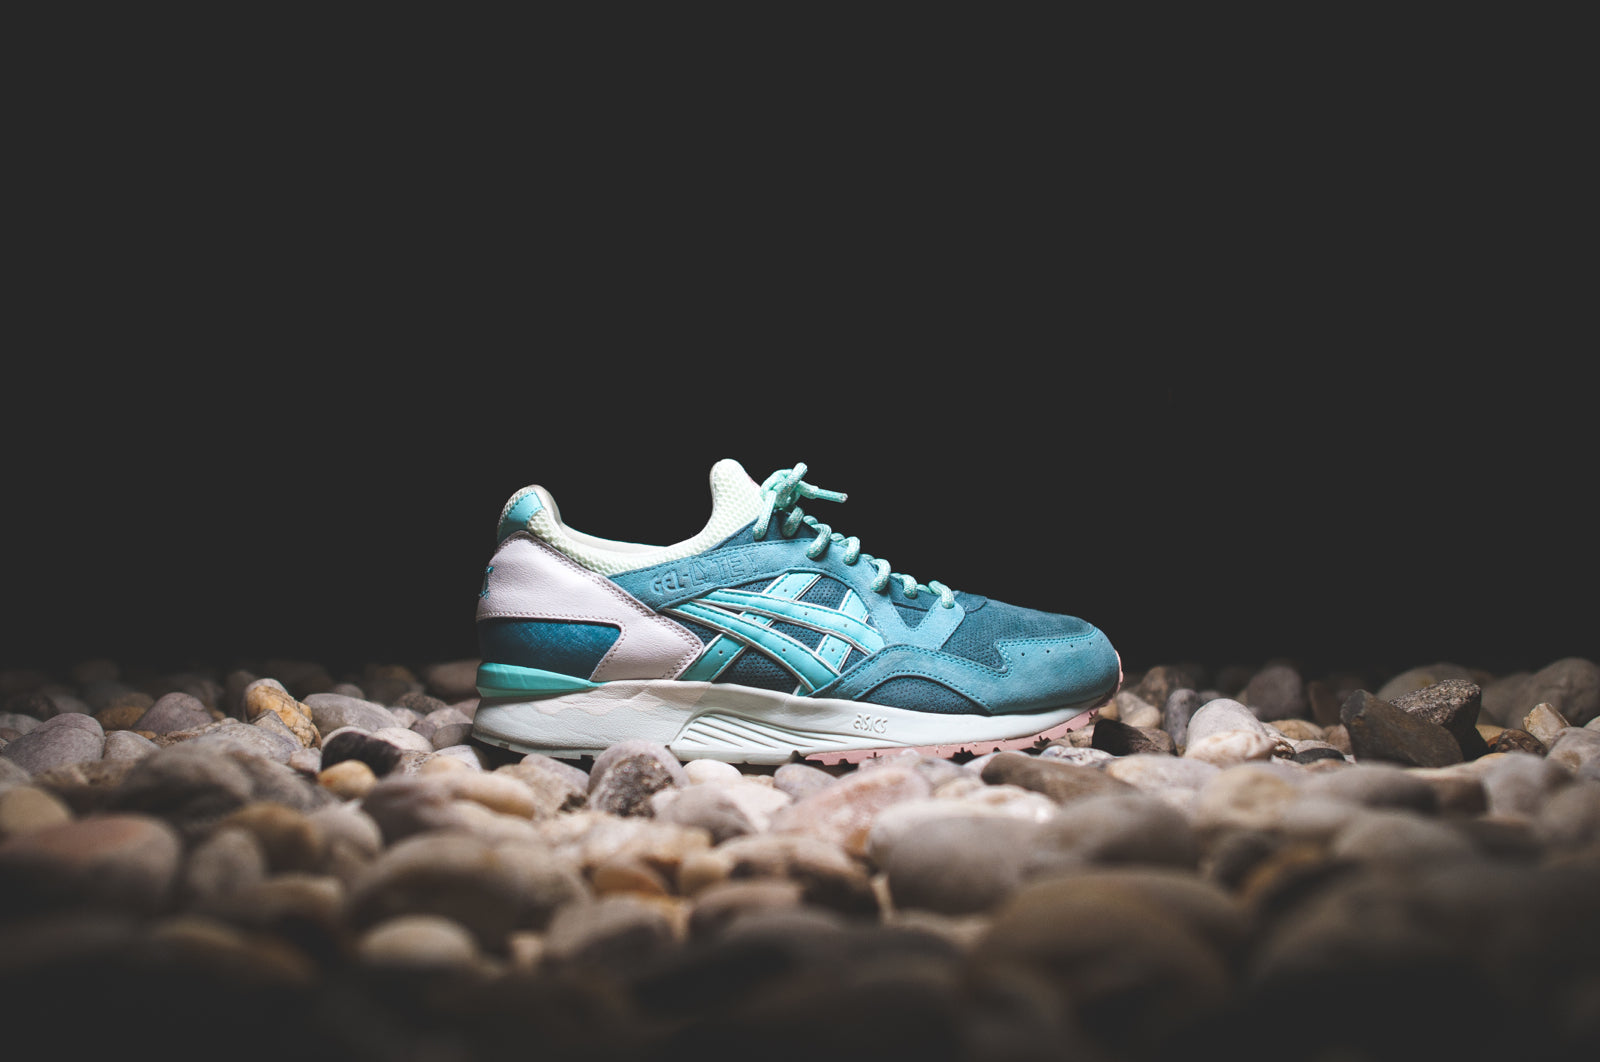 sports shoes 75572 850f0 RONNIE FIEG x ASICS GEL LYTE V - ROSE GOLD & SAGE @ KITH NYC ...